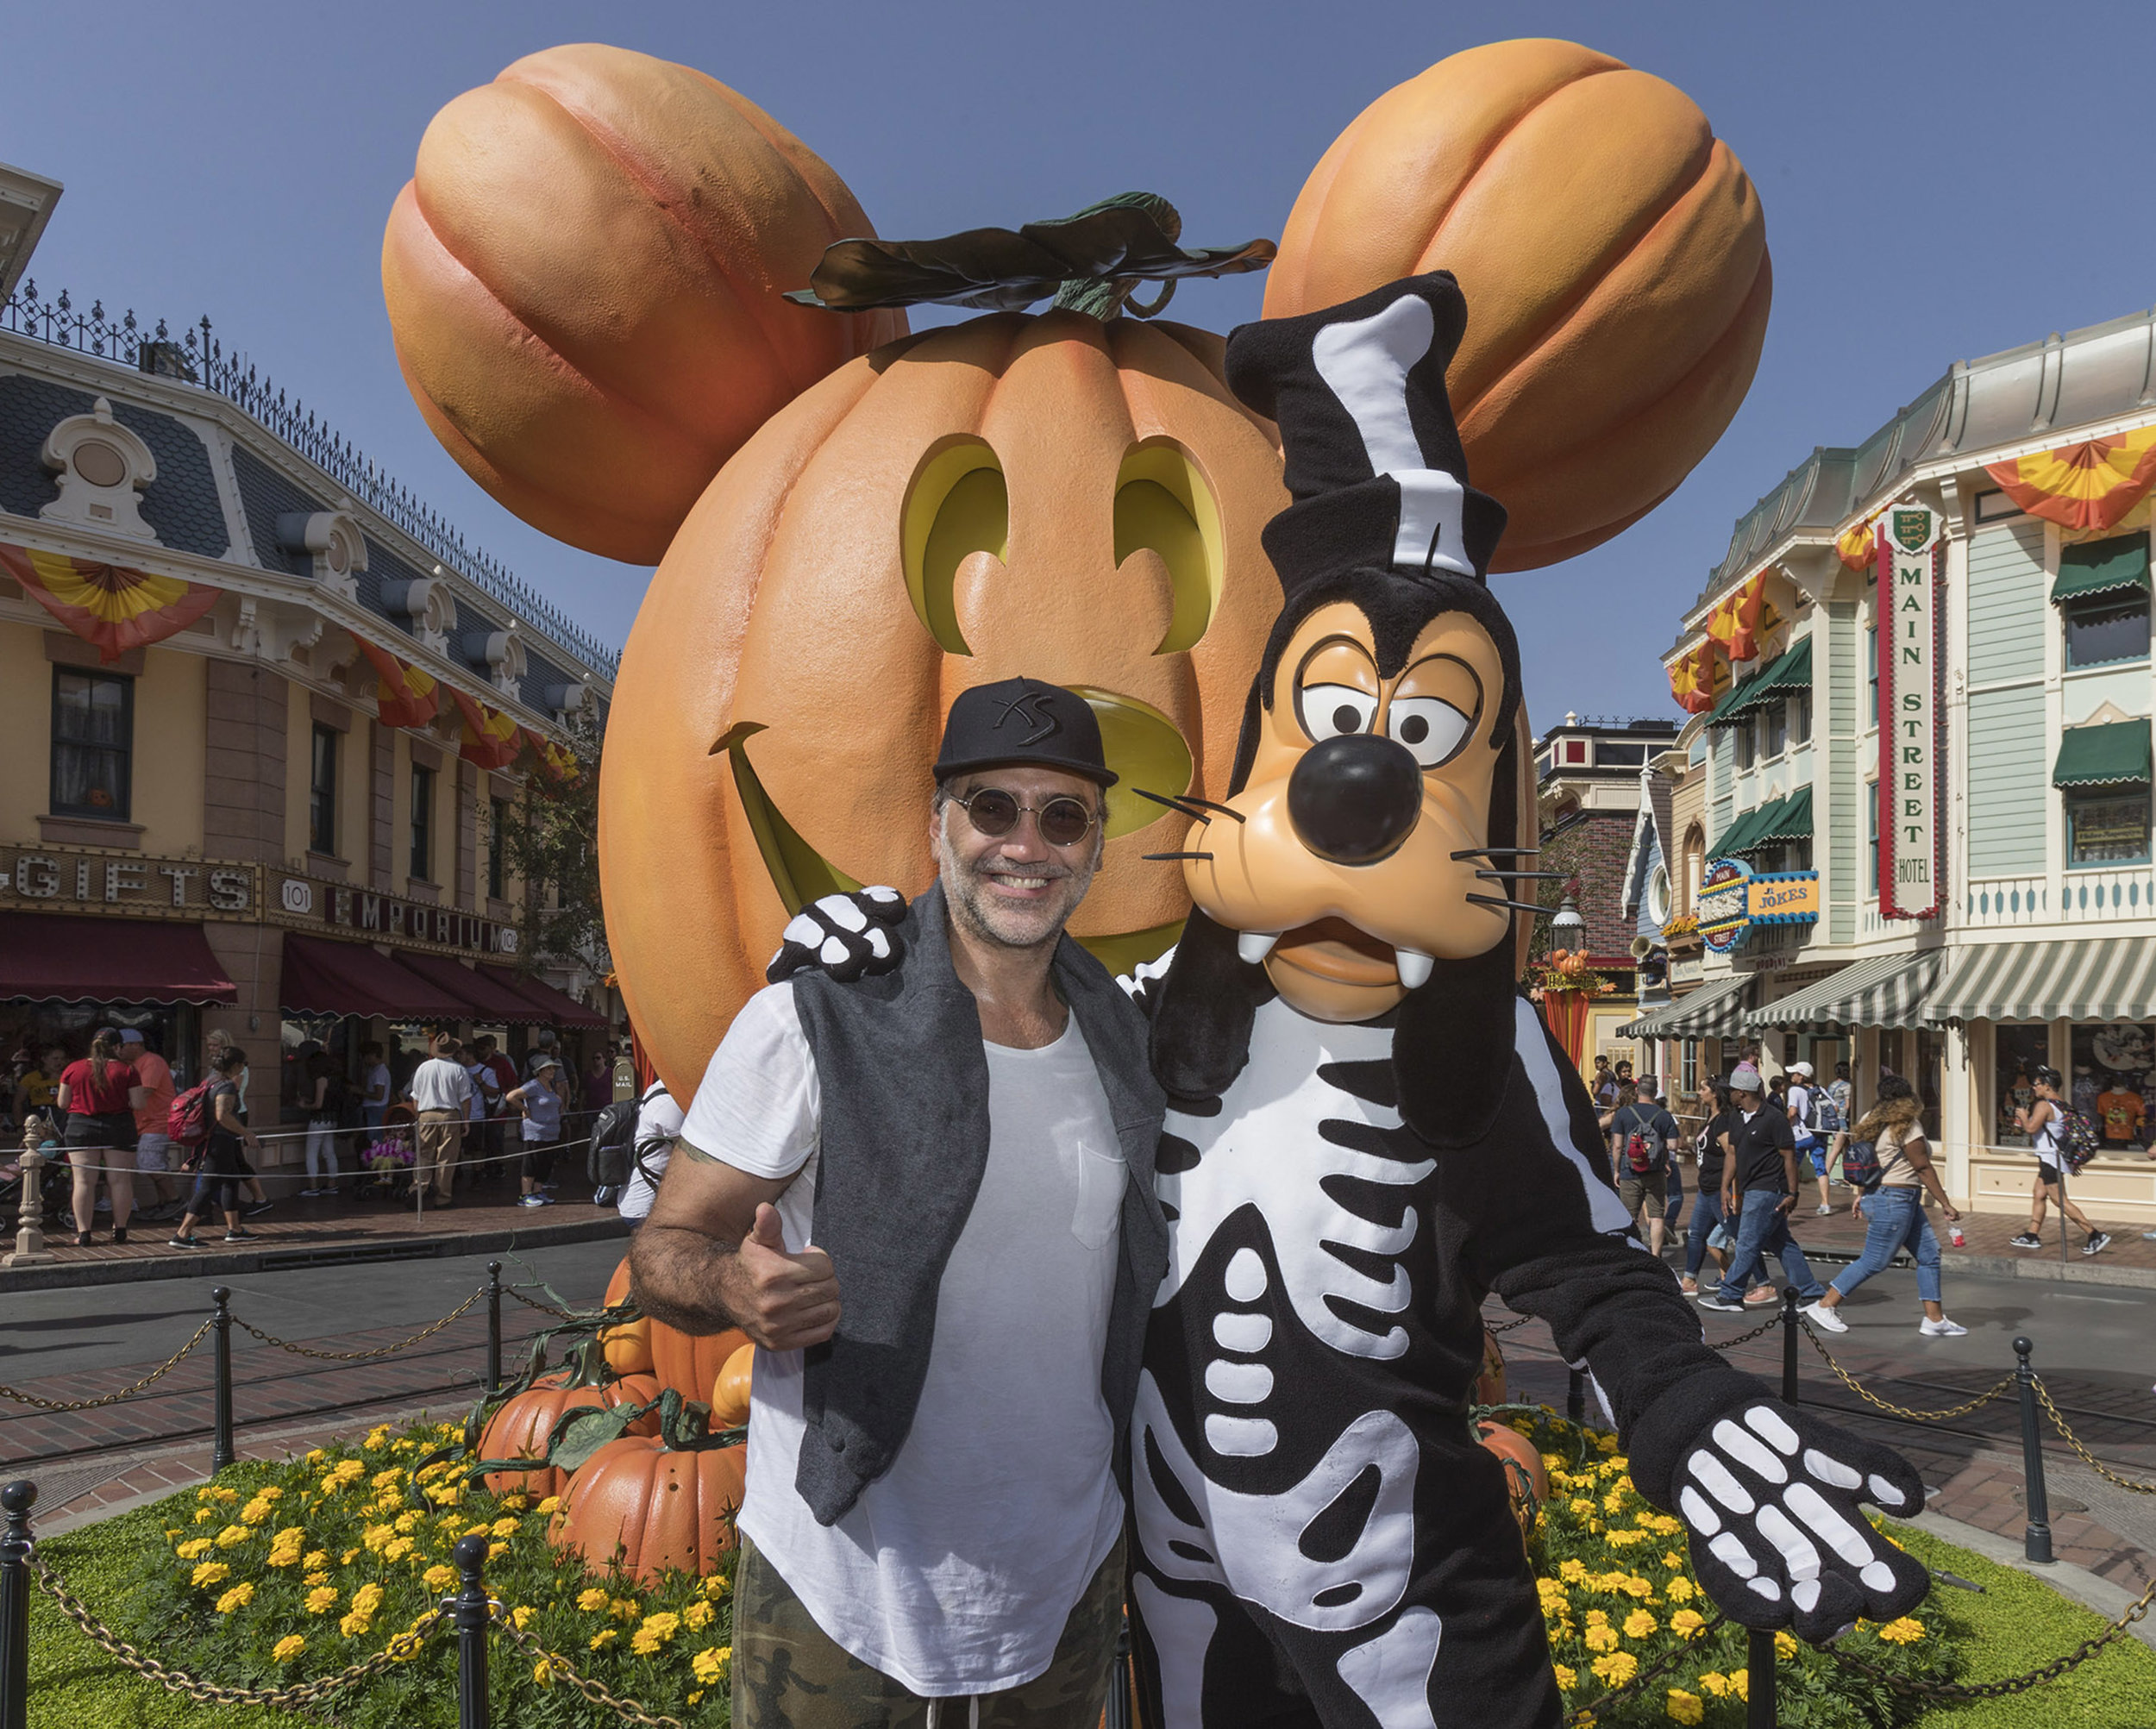 Alejandro Fernández with Goofy at Disneyland Park - Halloween Time - Jack-O-Lantern - Pumpkin - 9/20/18 (Joshua Sudock/Disneyland Resort)